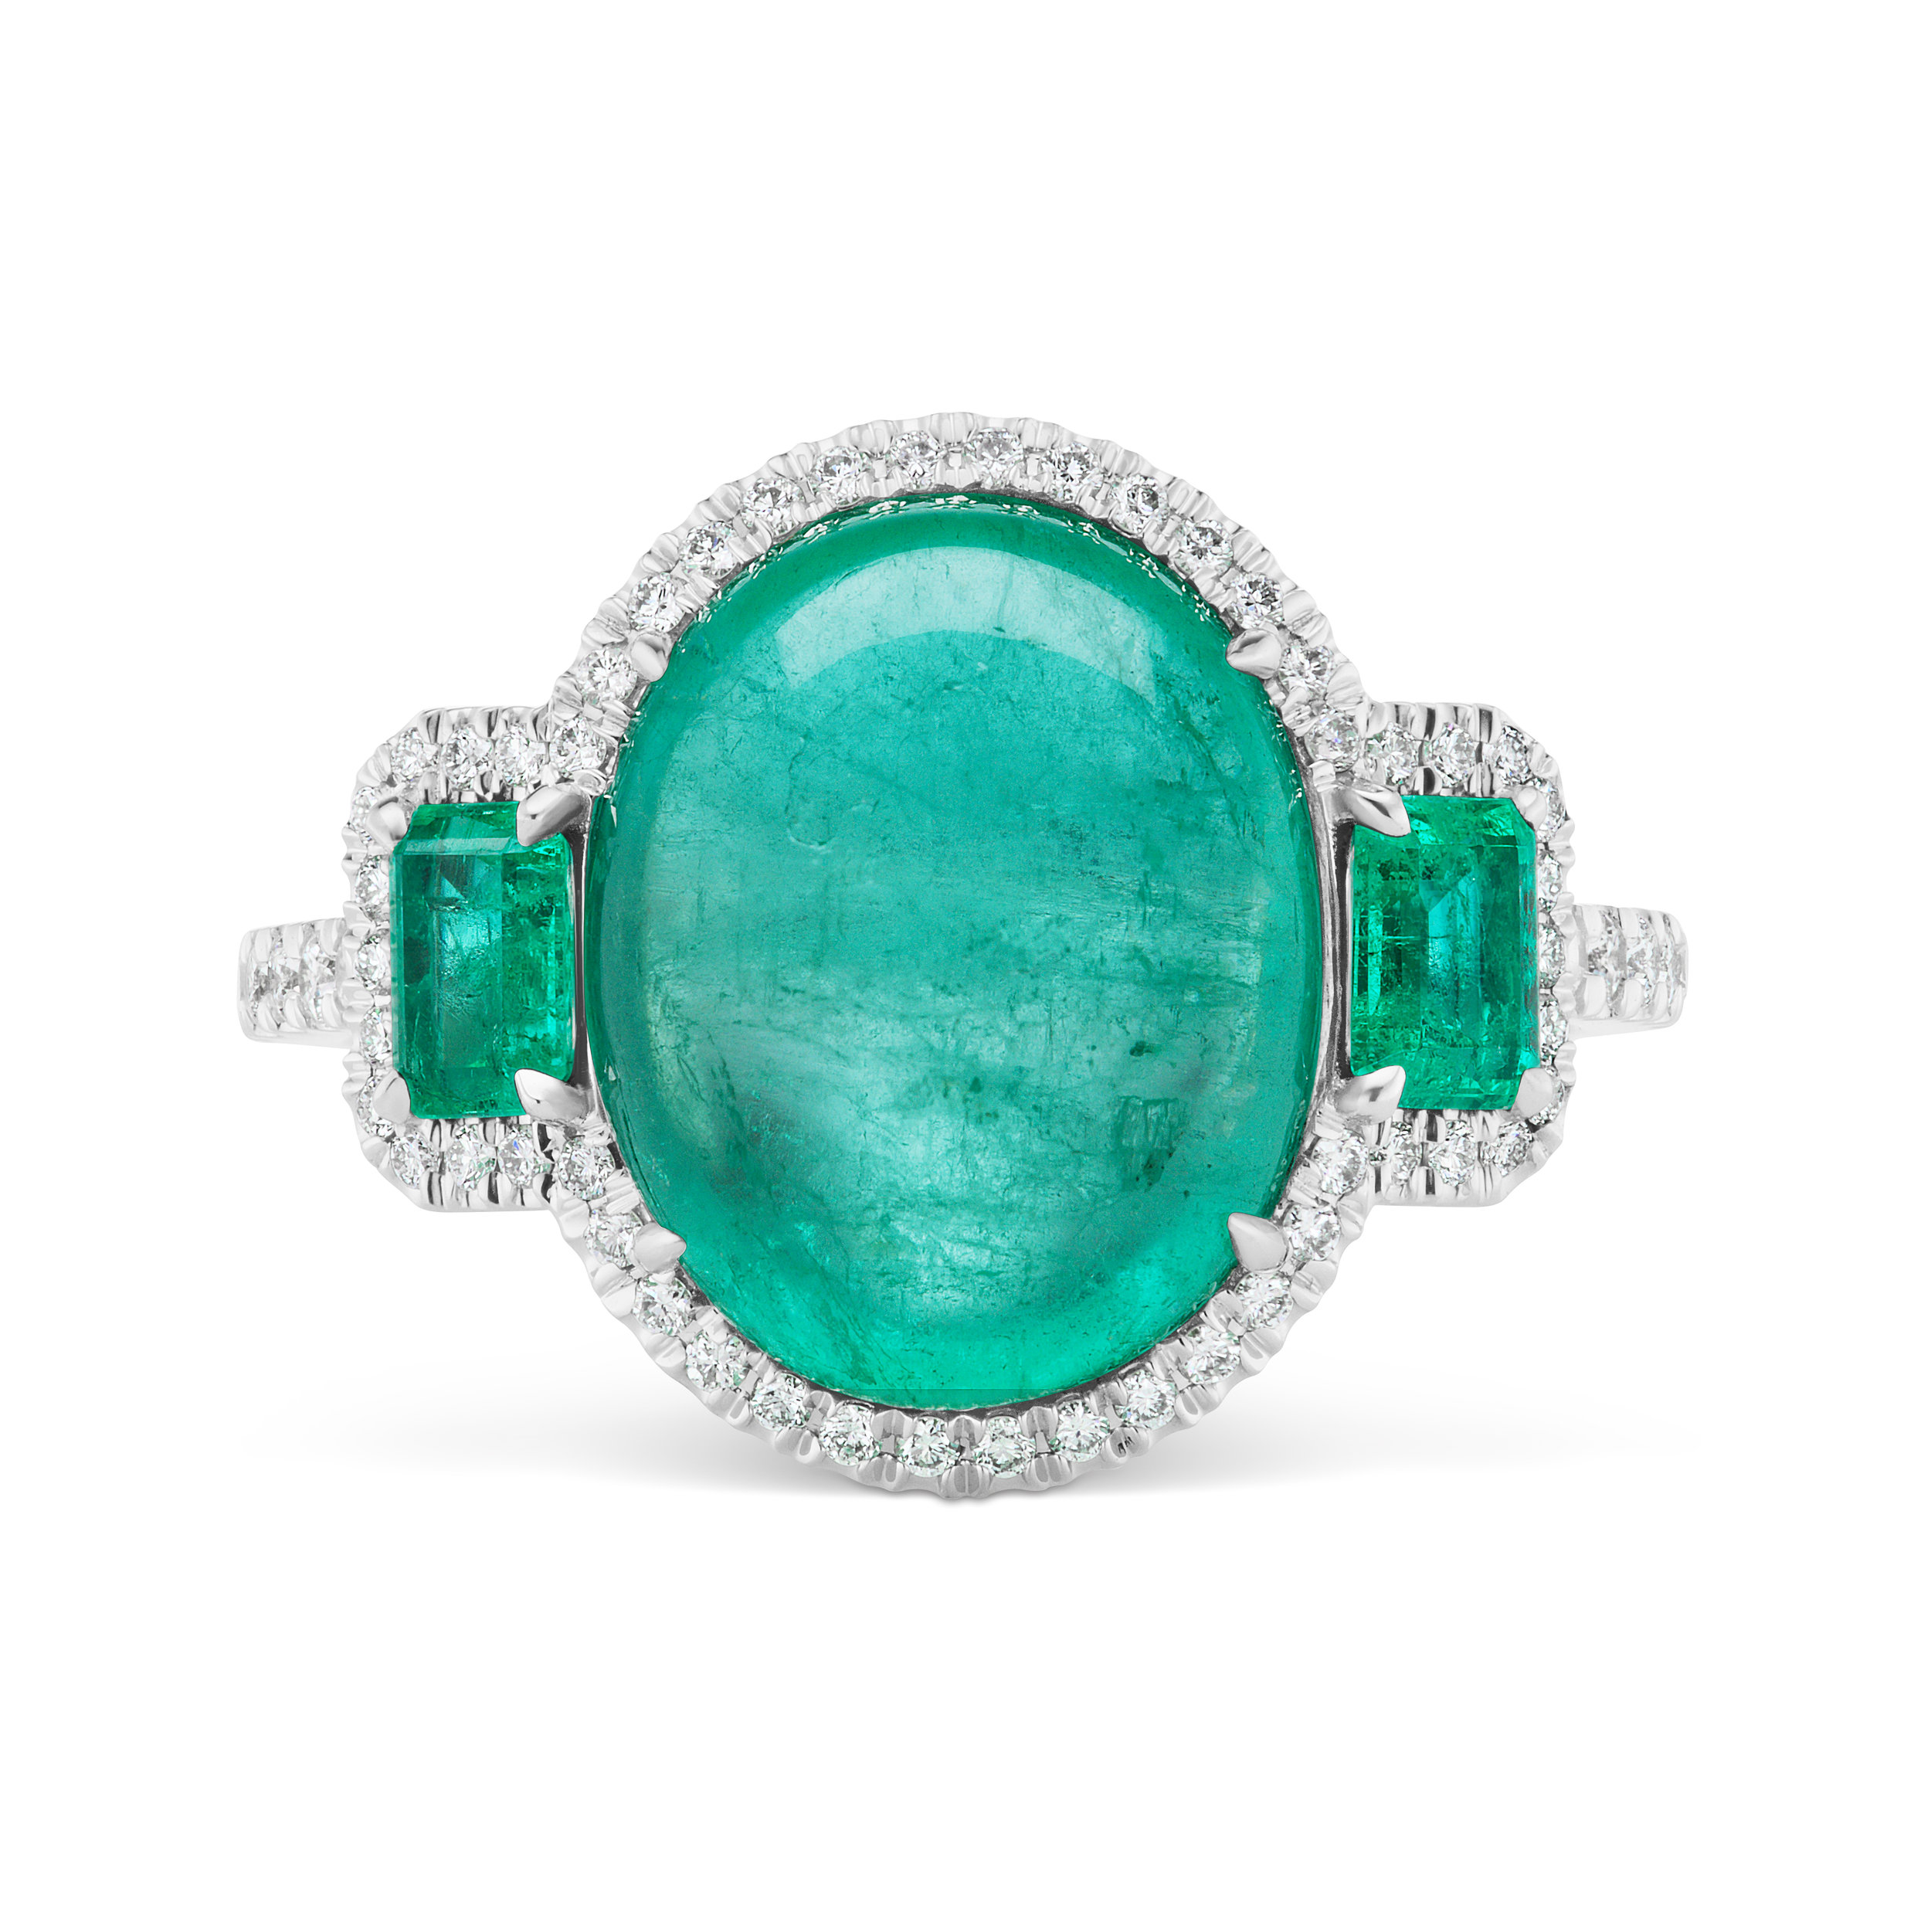 Colombian emerald three-stone ring with micropavé diamond trim and band, mounted in platinum.